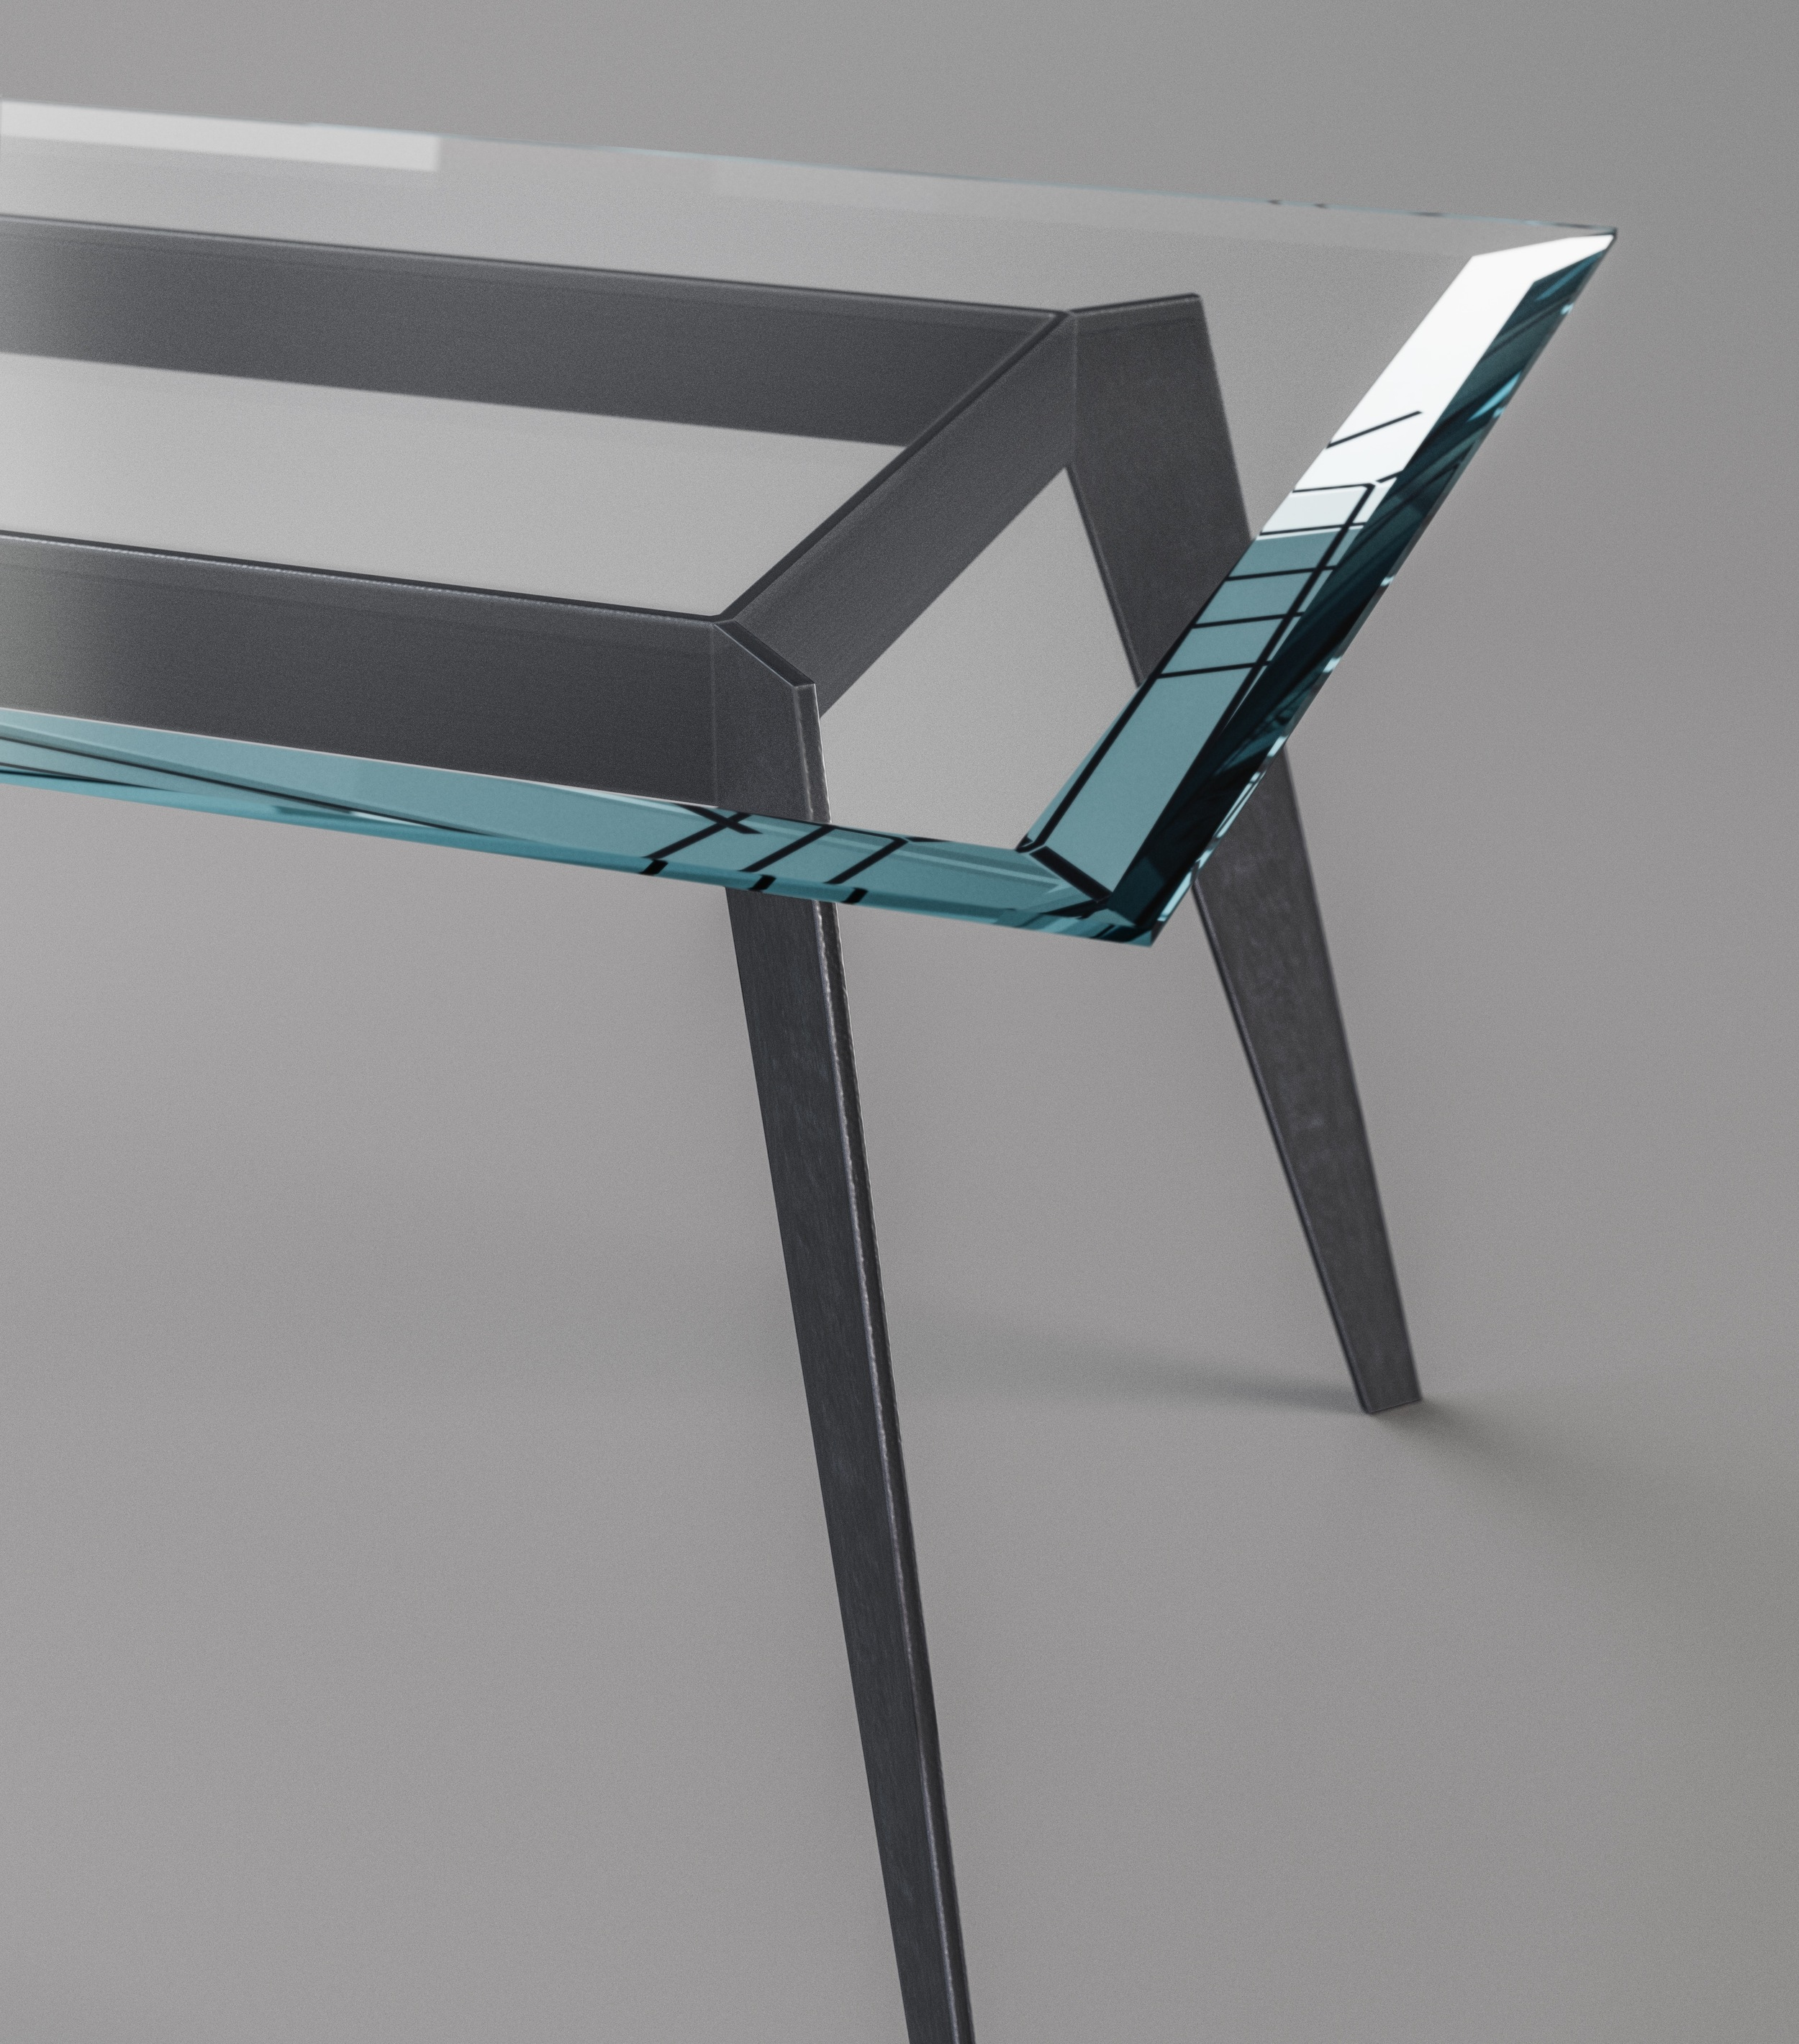 Top view of table